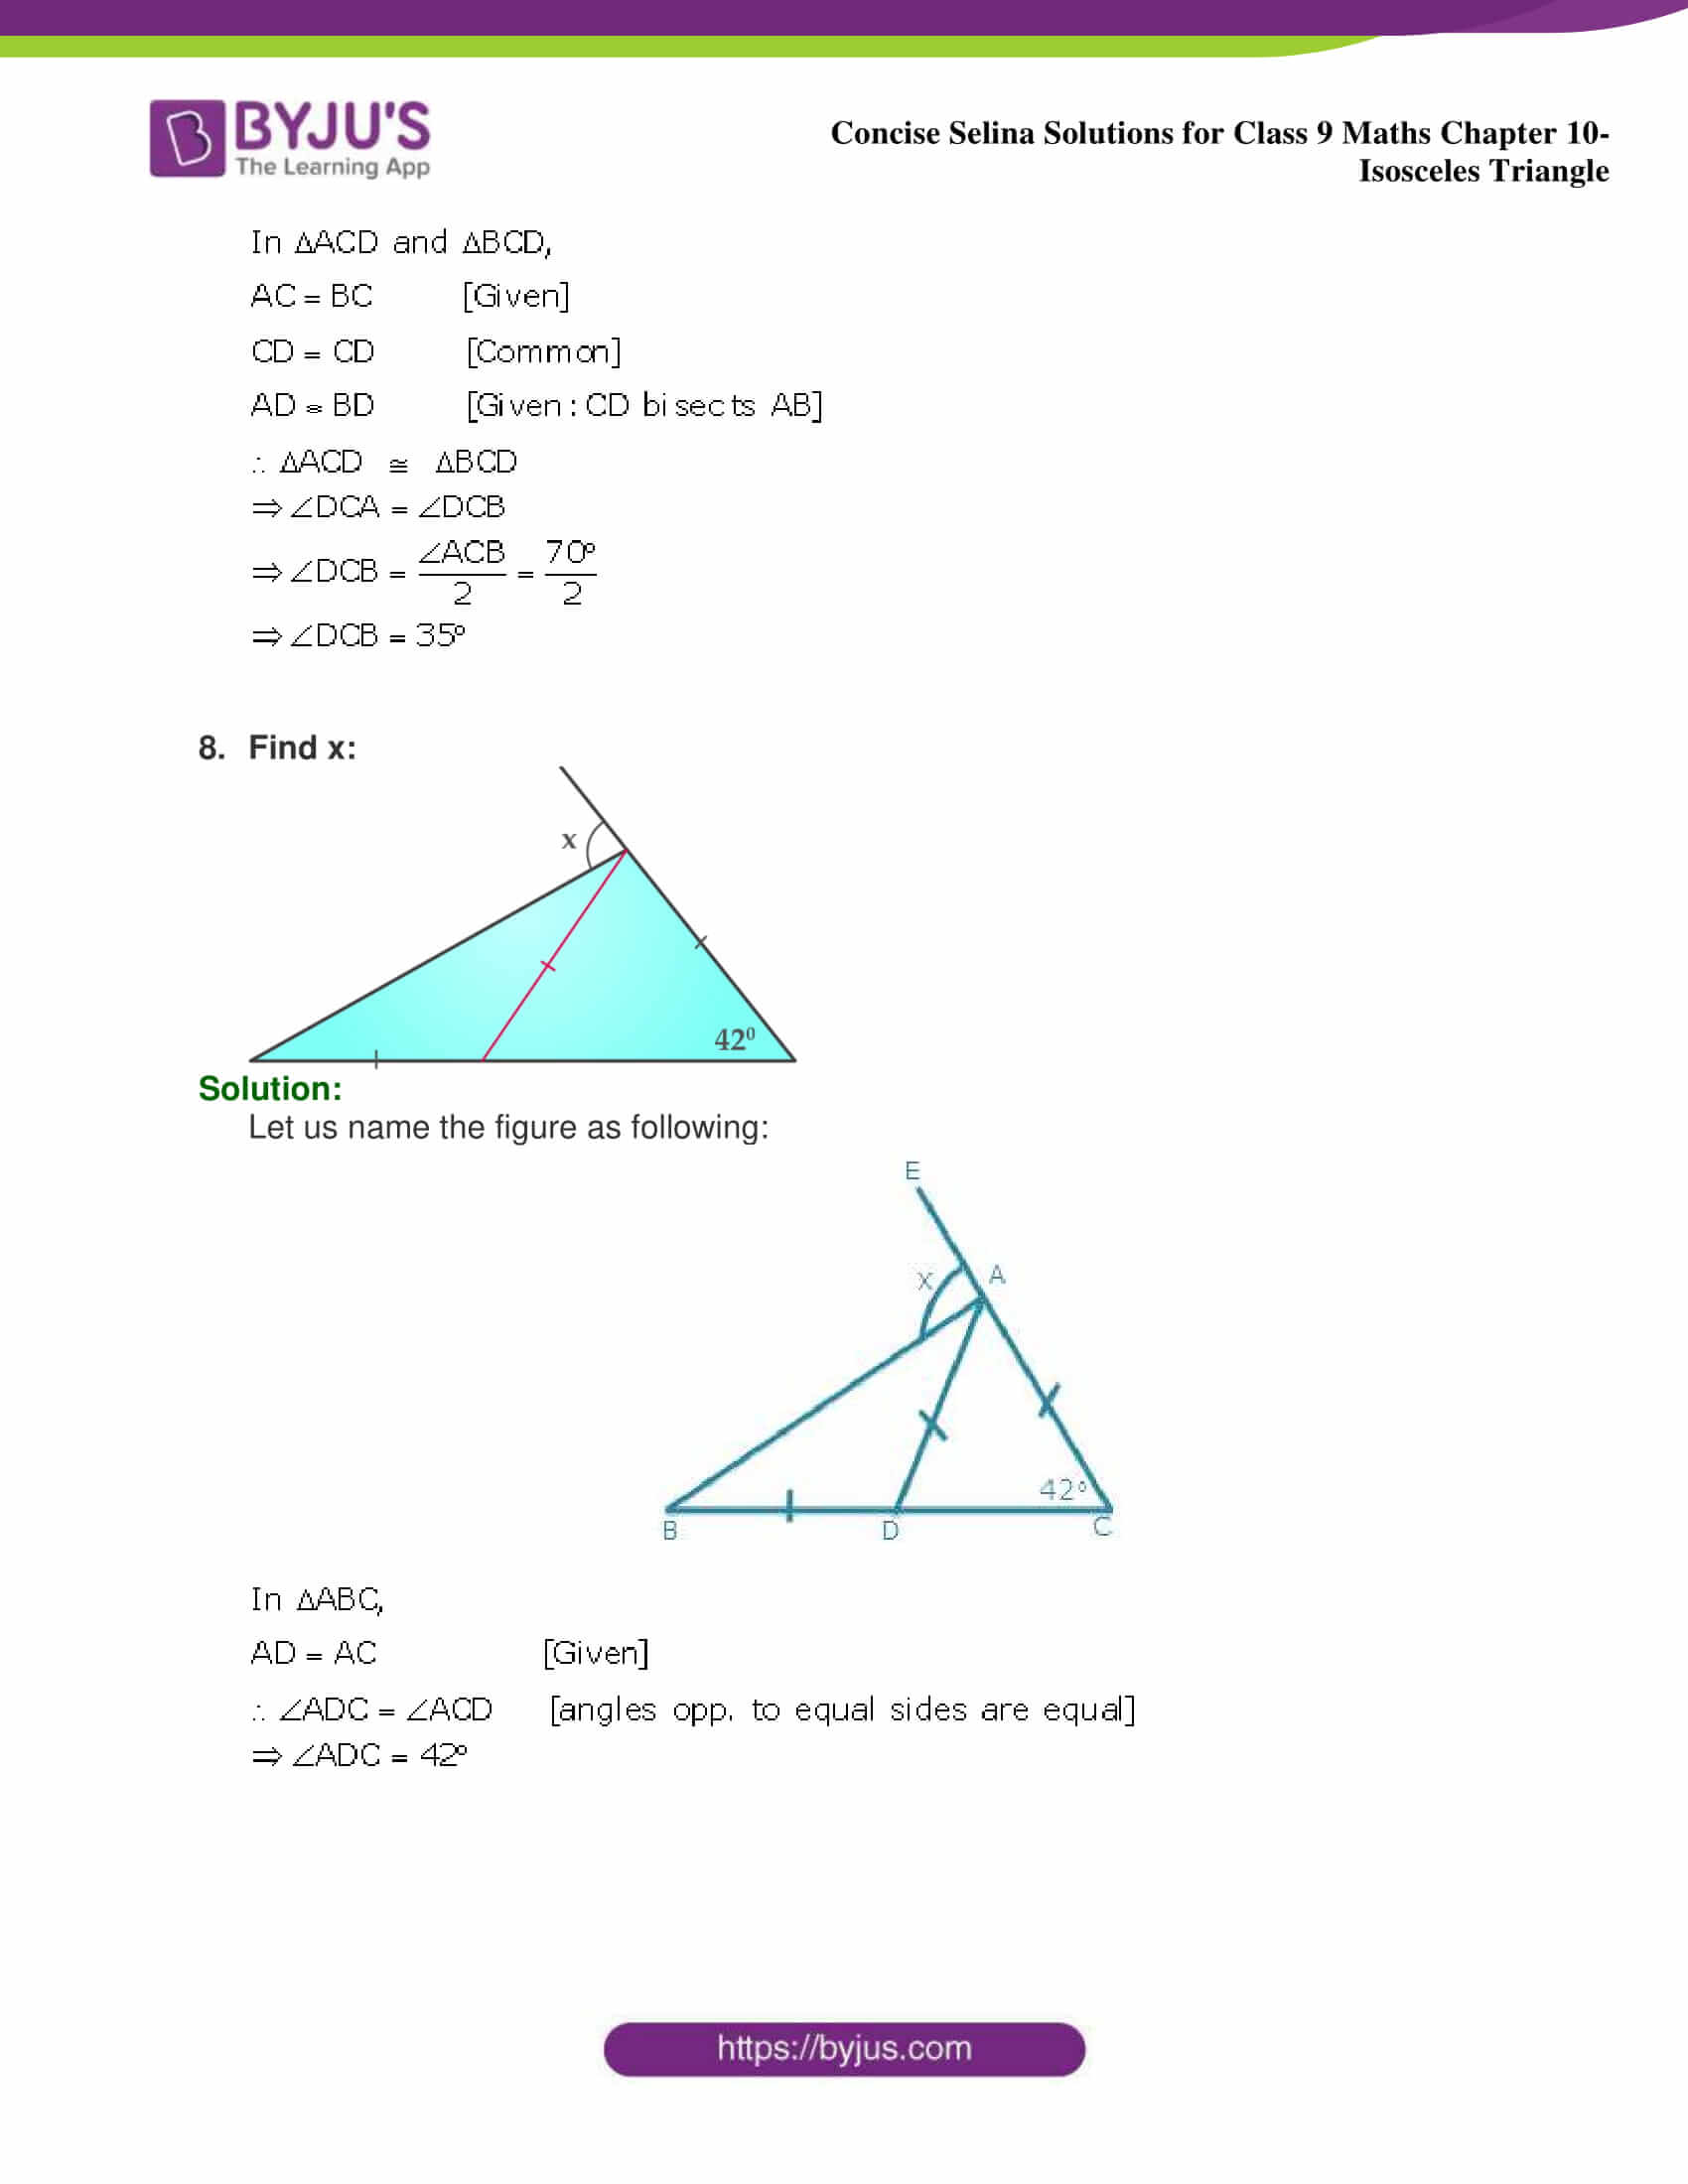 selina Solutions for Class 9 Maths Chapter 10 part 09